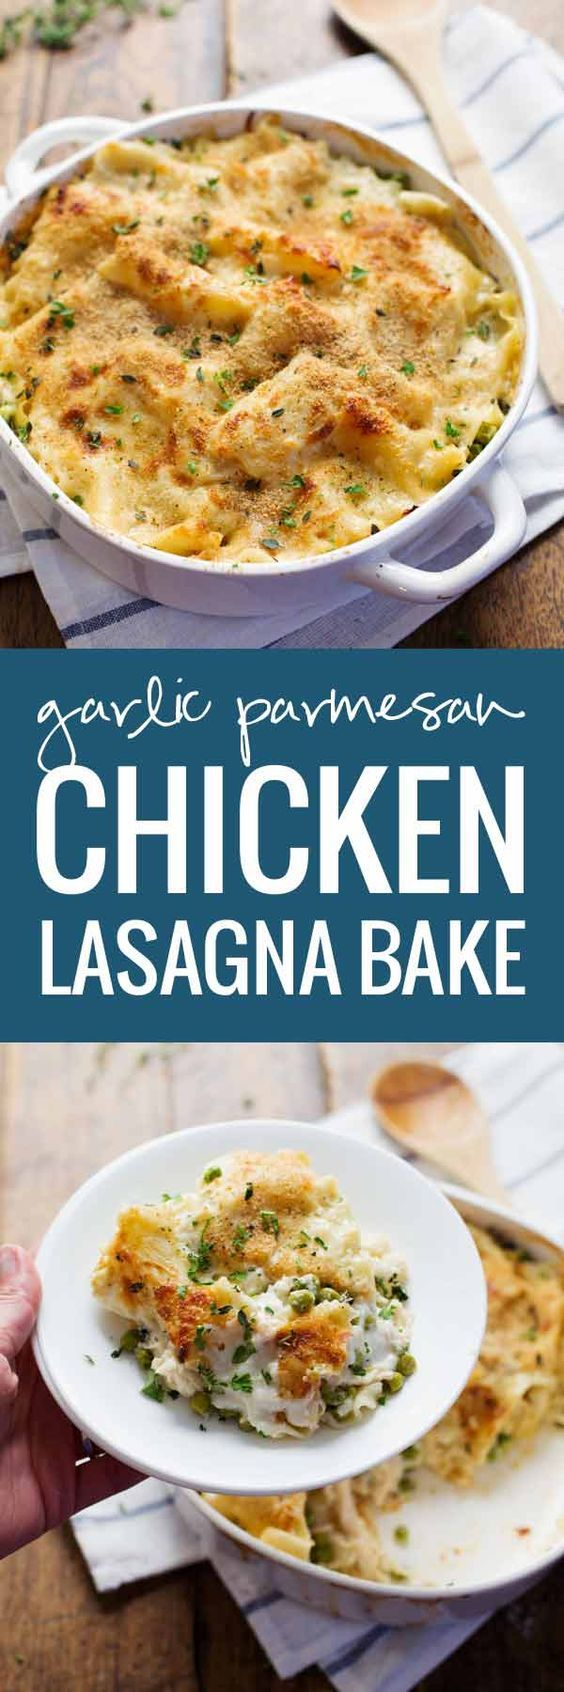 Garlic Parmesan Chicken Lasagna Bake! Layers of lasagna noodles, chicken, peas, creamy garlic Parmesan sauce --> no cans, all real, totally yummy. 300 calories. | pinchofyum.com